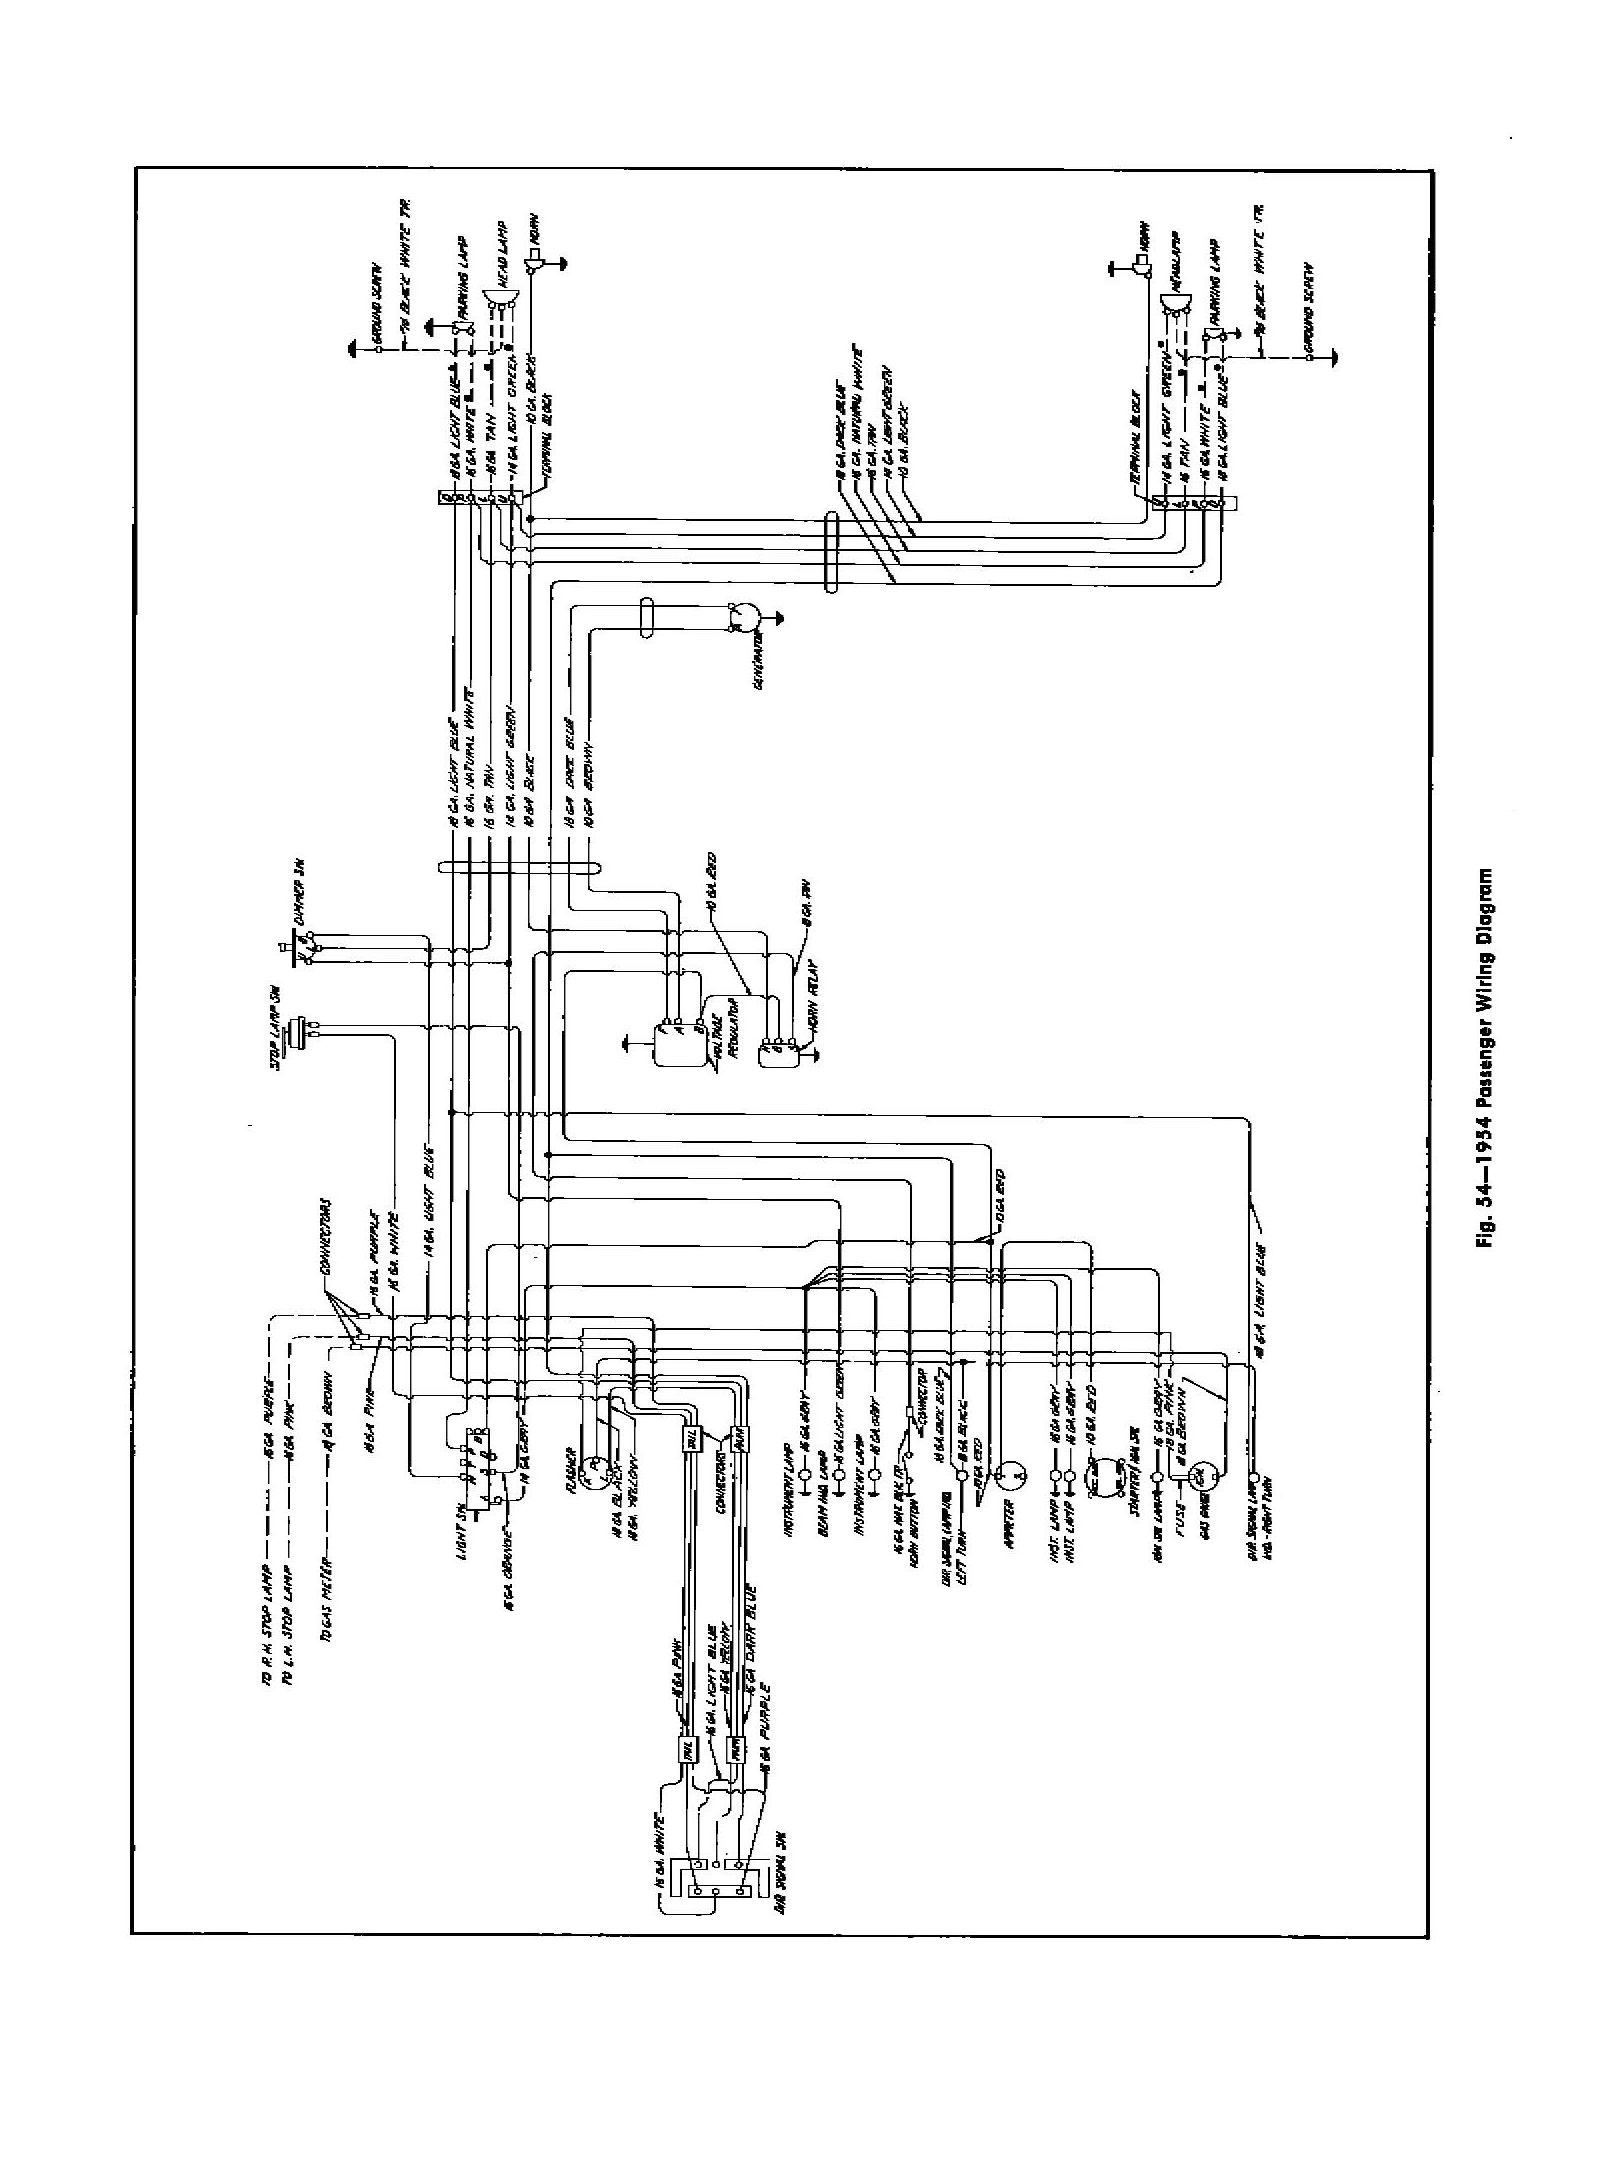 license plate camera wiring diagram